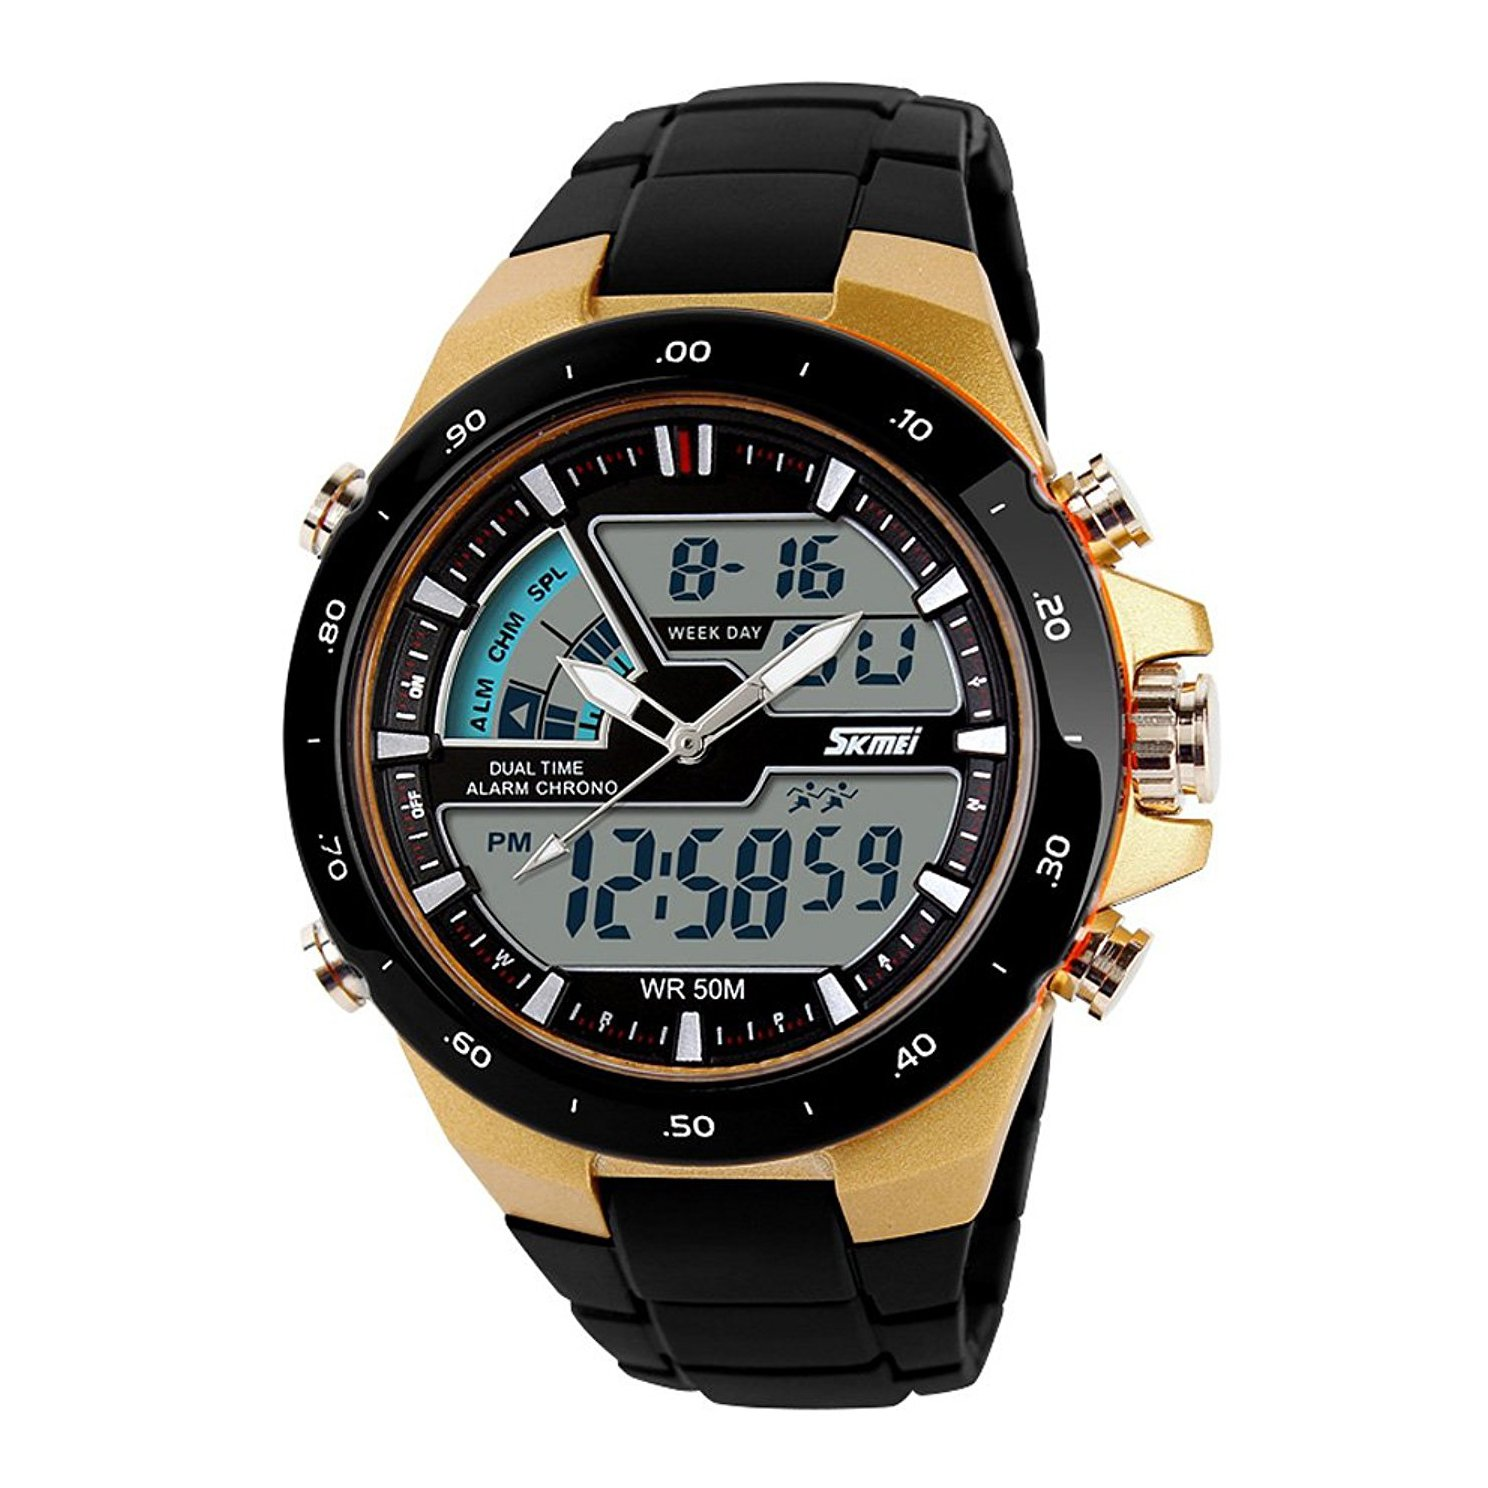 Carrie Hughes Men's Digital Watch 50M Waterproof Large Dual Dial Multifunction Analog Military Outdoor Sports Electronic Watch Calendar Day Date (CH031)